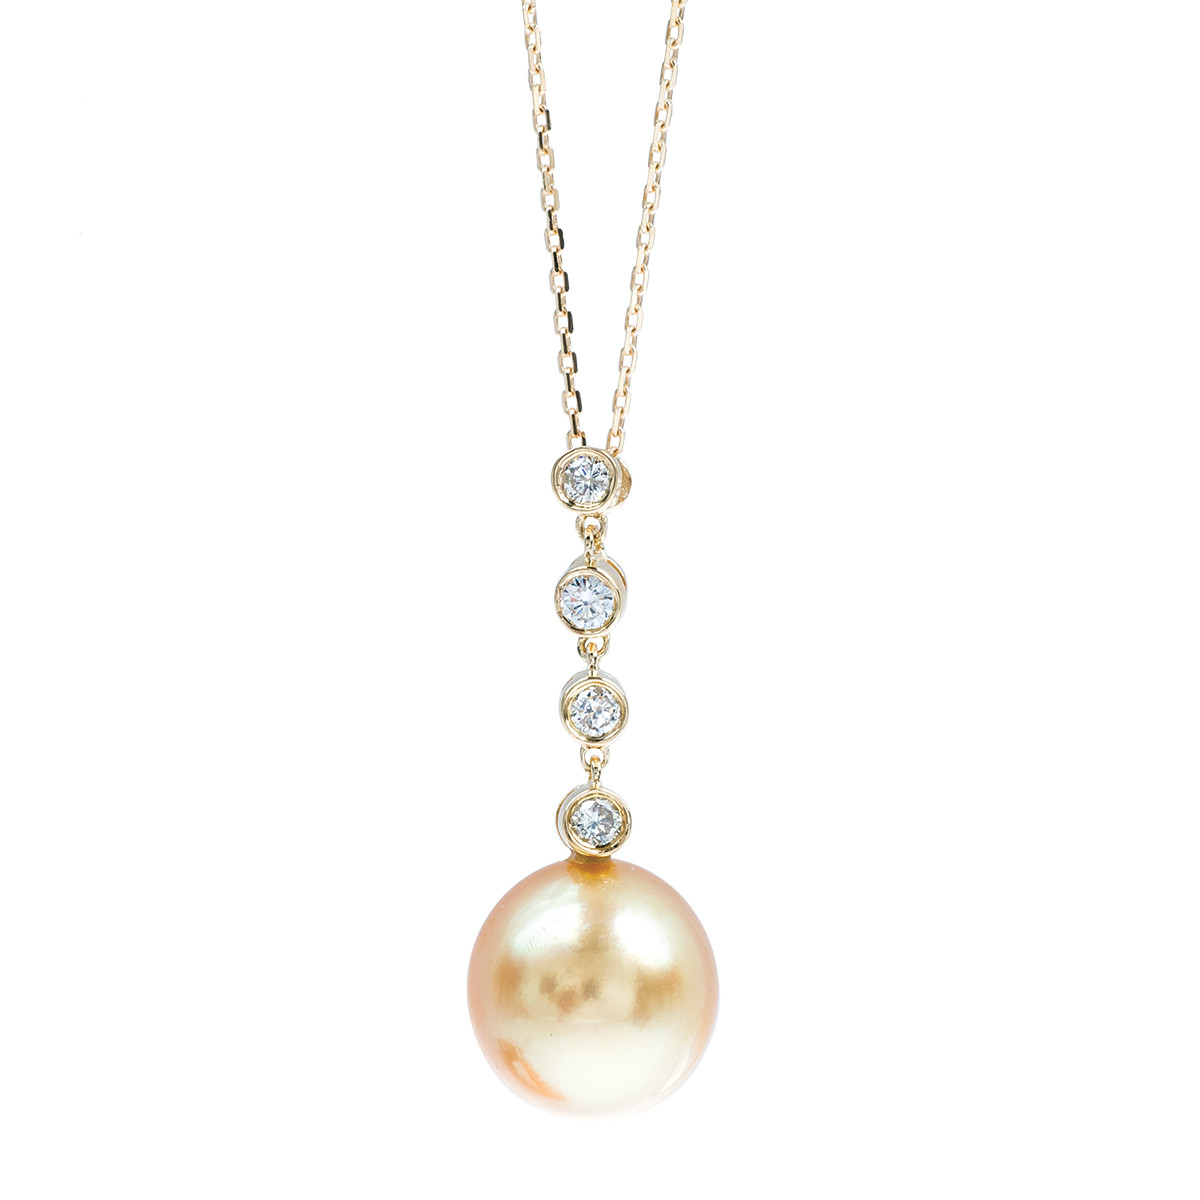 Vintage South Pearl & Diamond Necklace